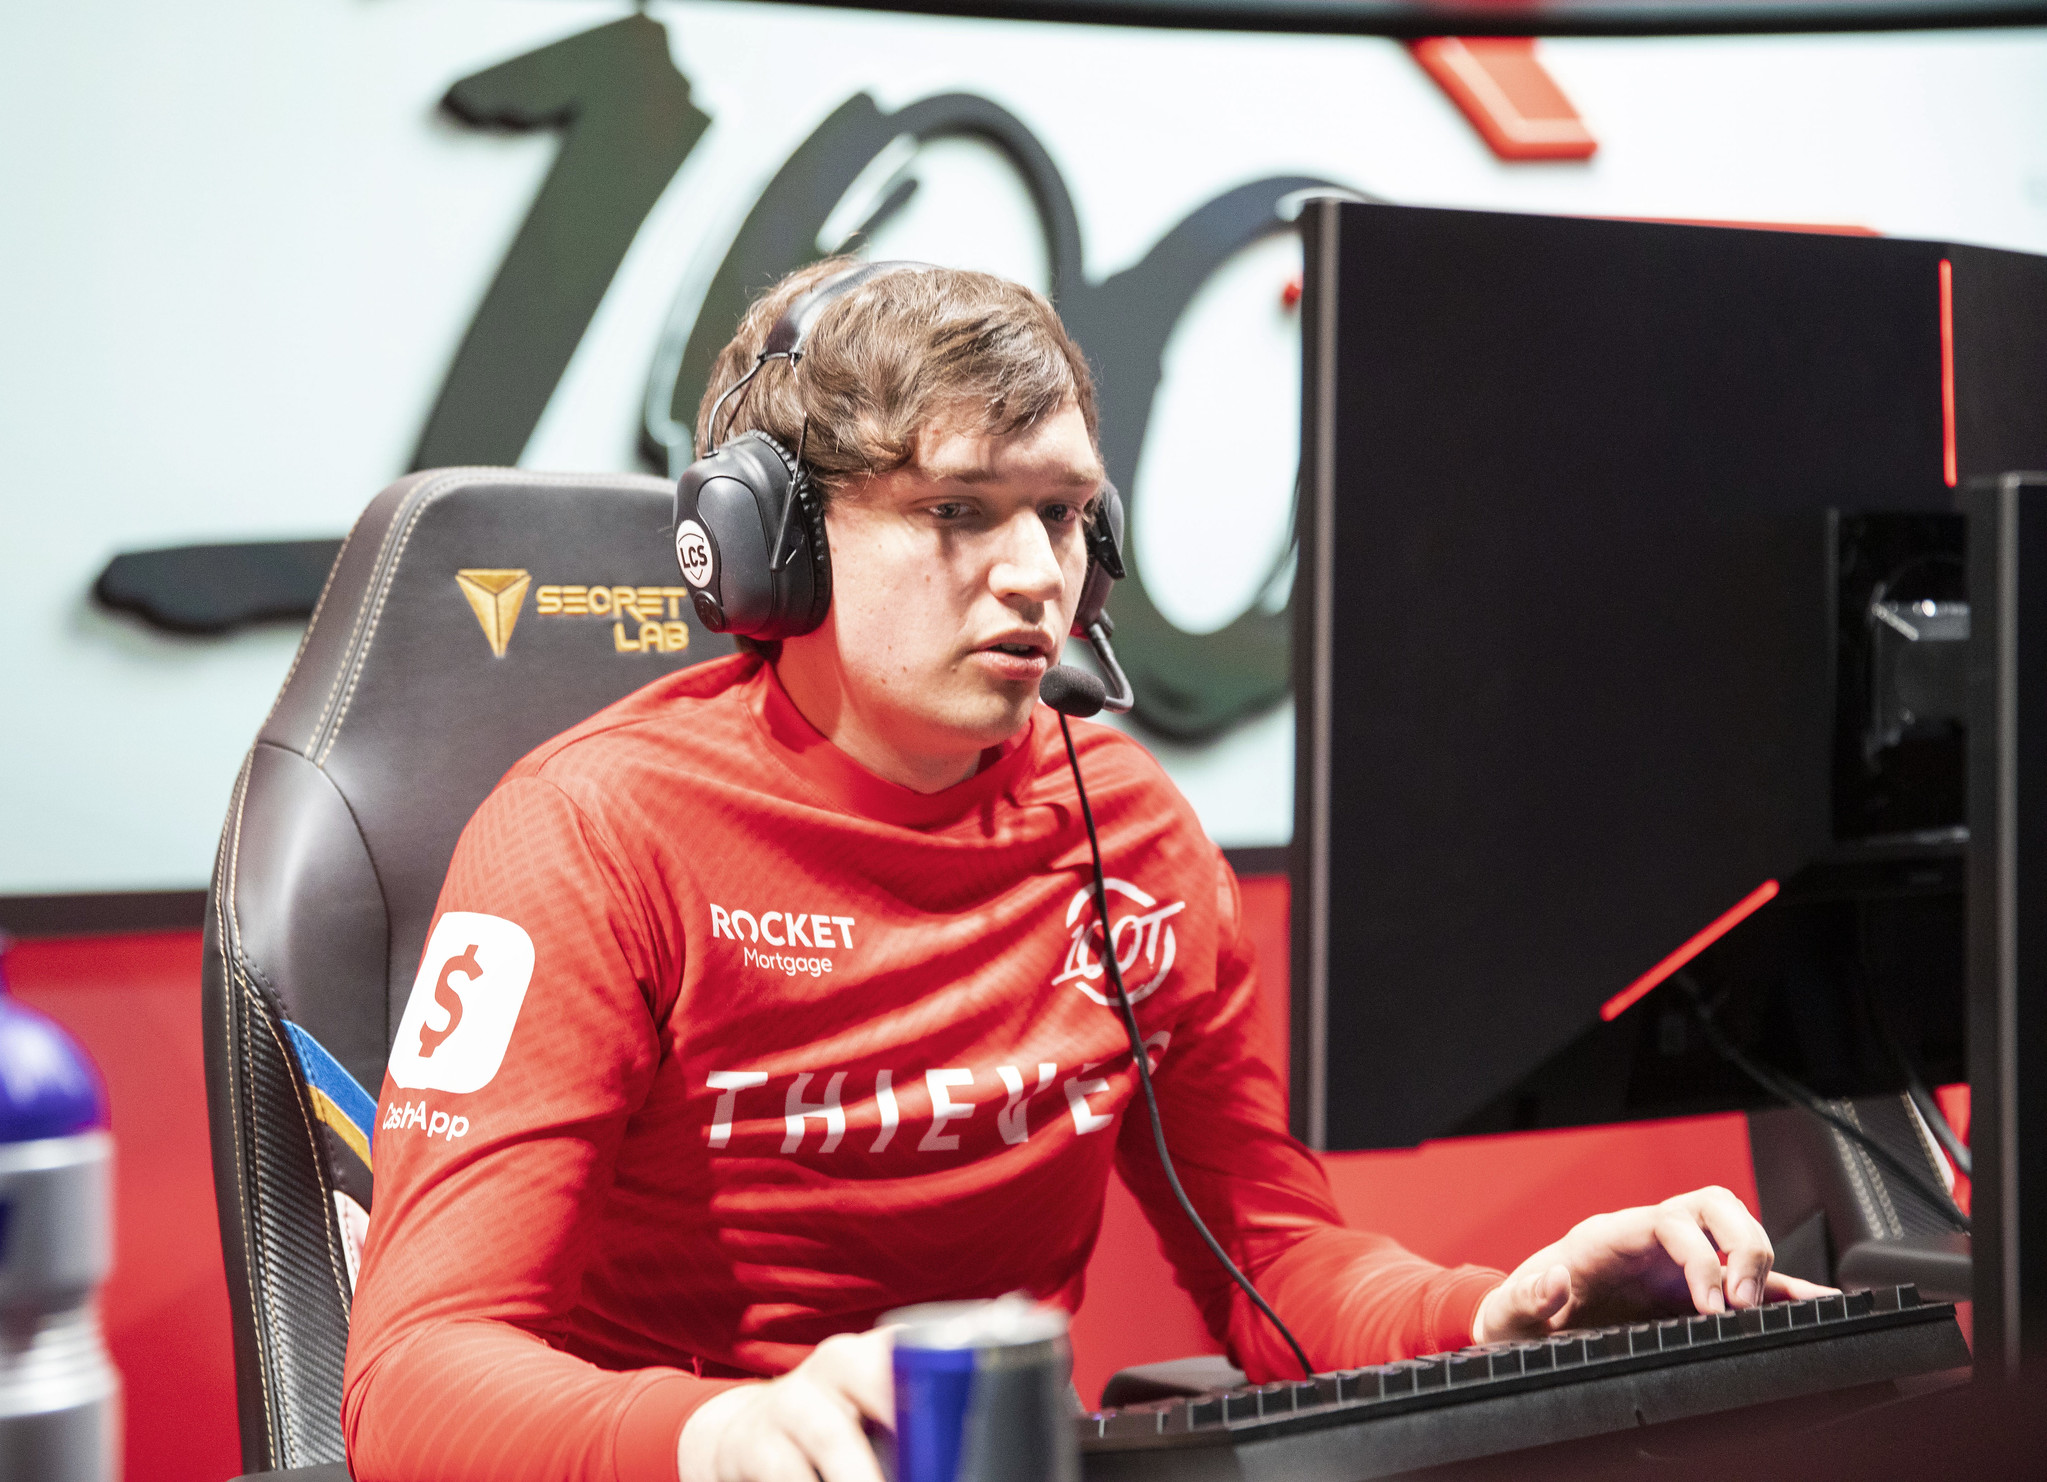 Meteos playing LCS Summer 2020